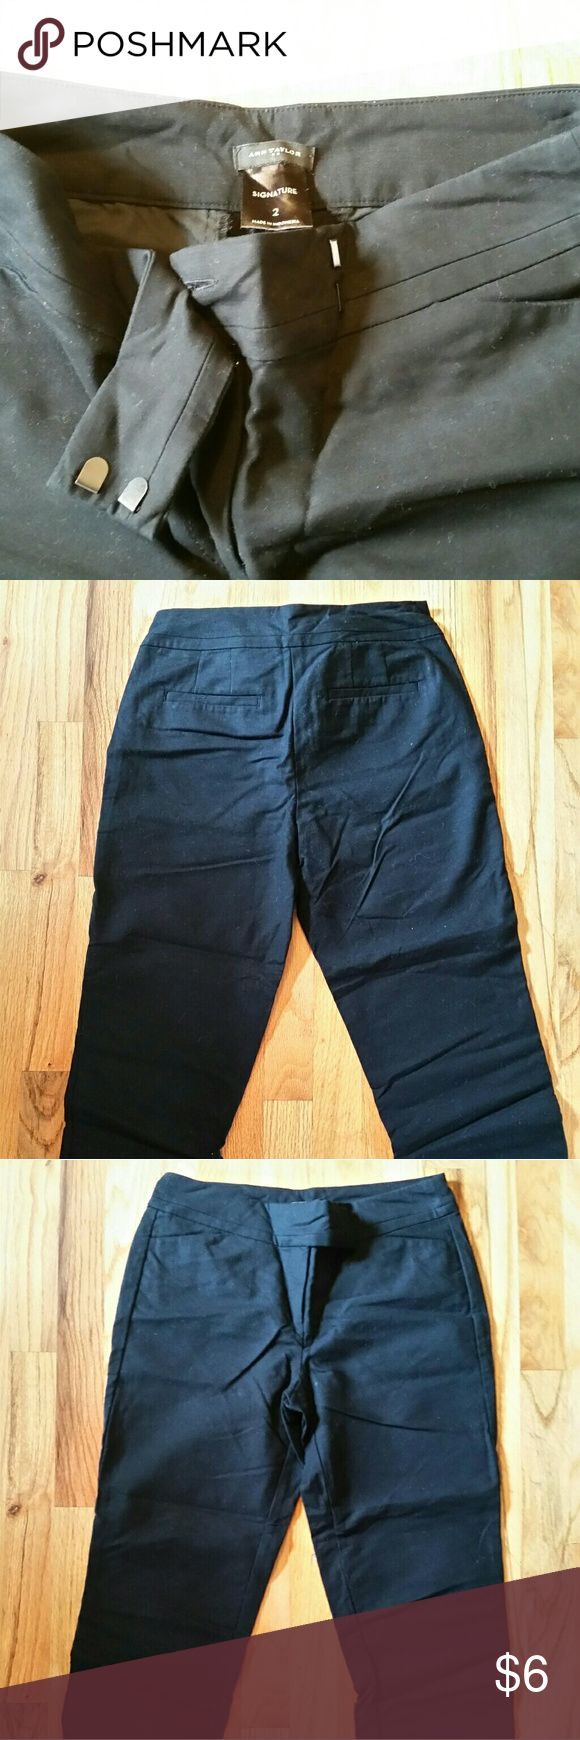 Black Cropped Trousers These are Ann Taylor cropped trouser pants. They are black and have been gently worn. They hit midcalf and are great to wear as a business casual look. The fit us Ann Taylor's signiture style! They are a size 2. Ann Taylor Pants Ankle & Cropped